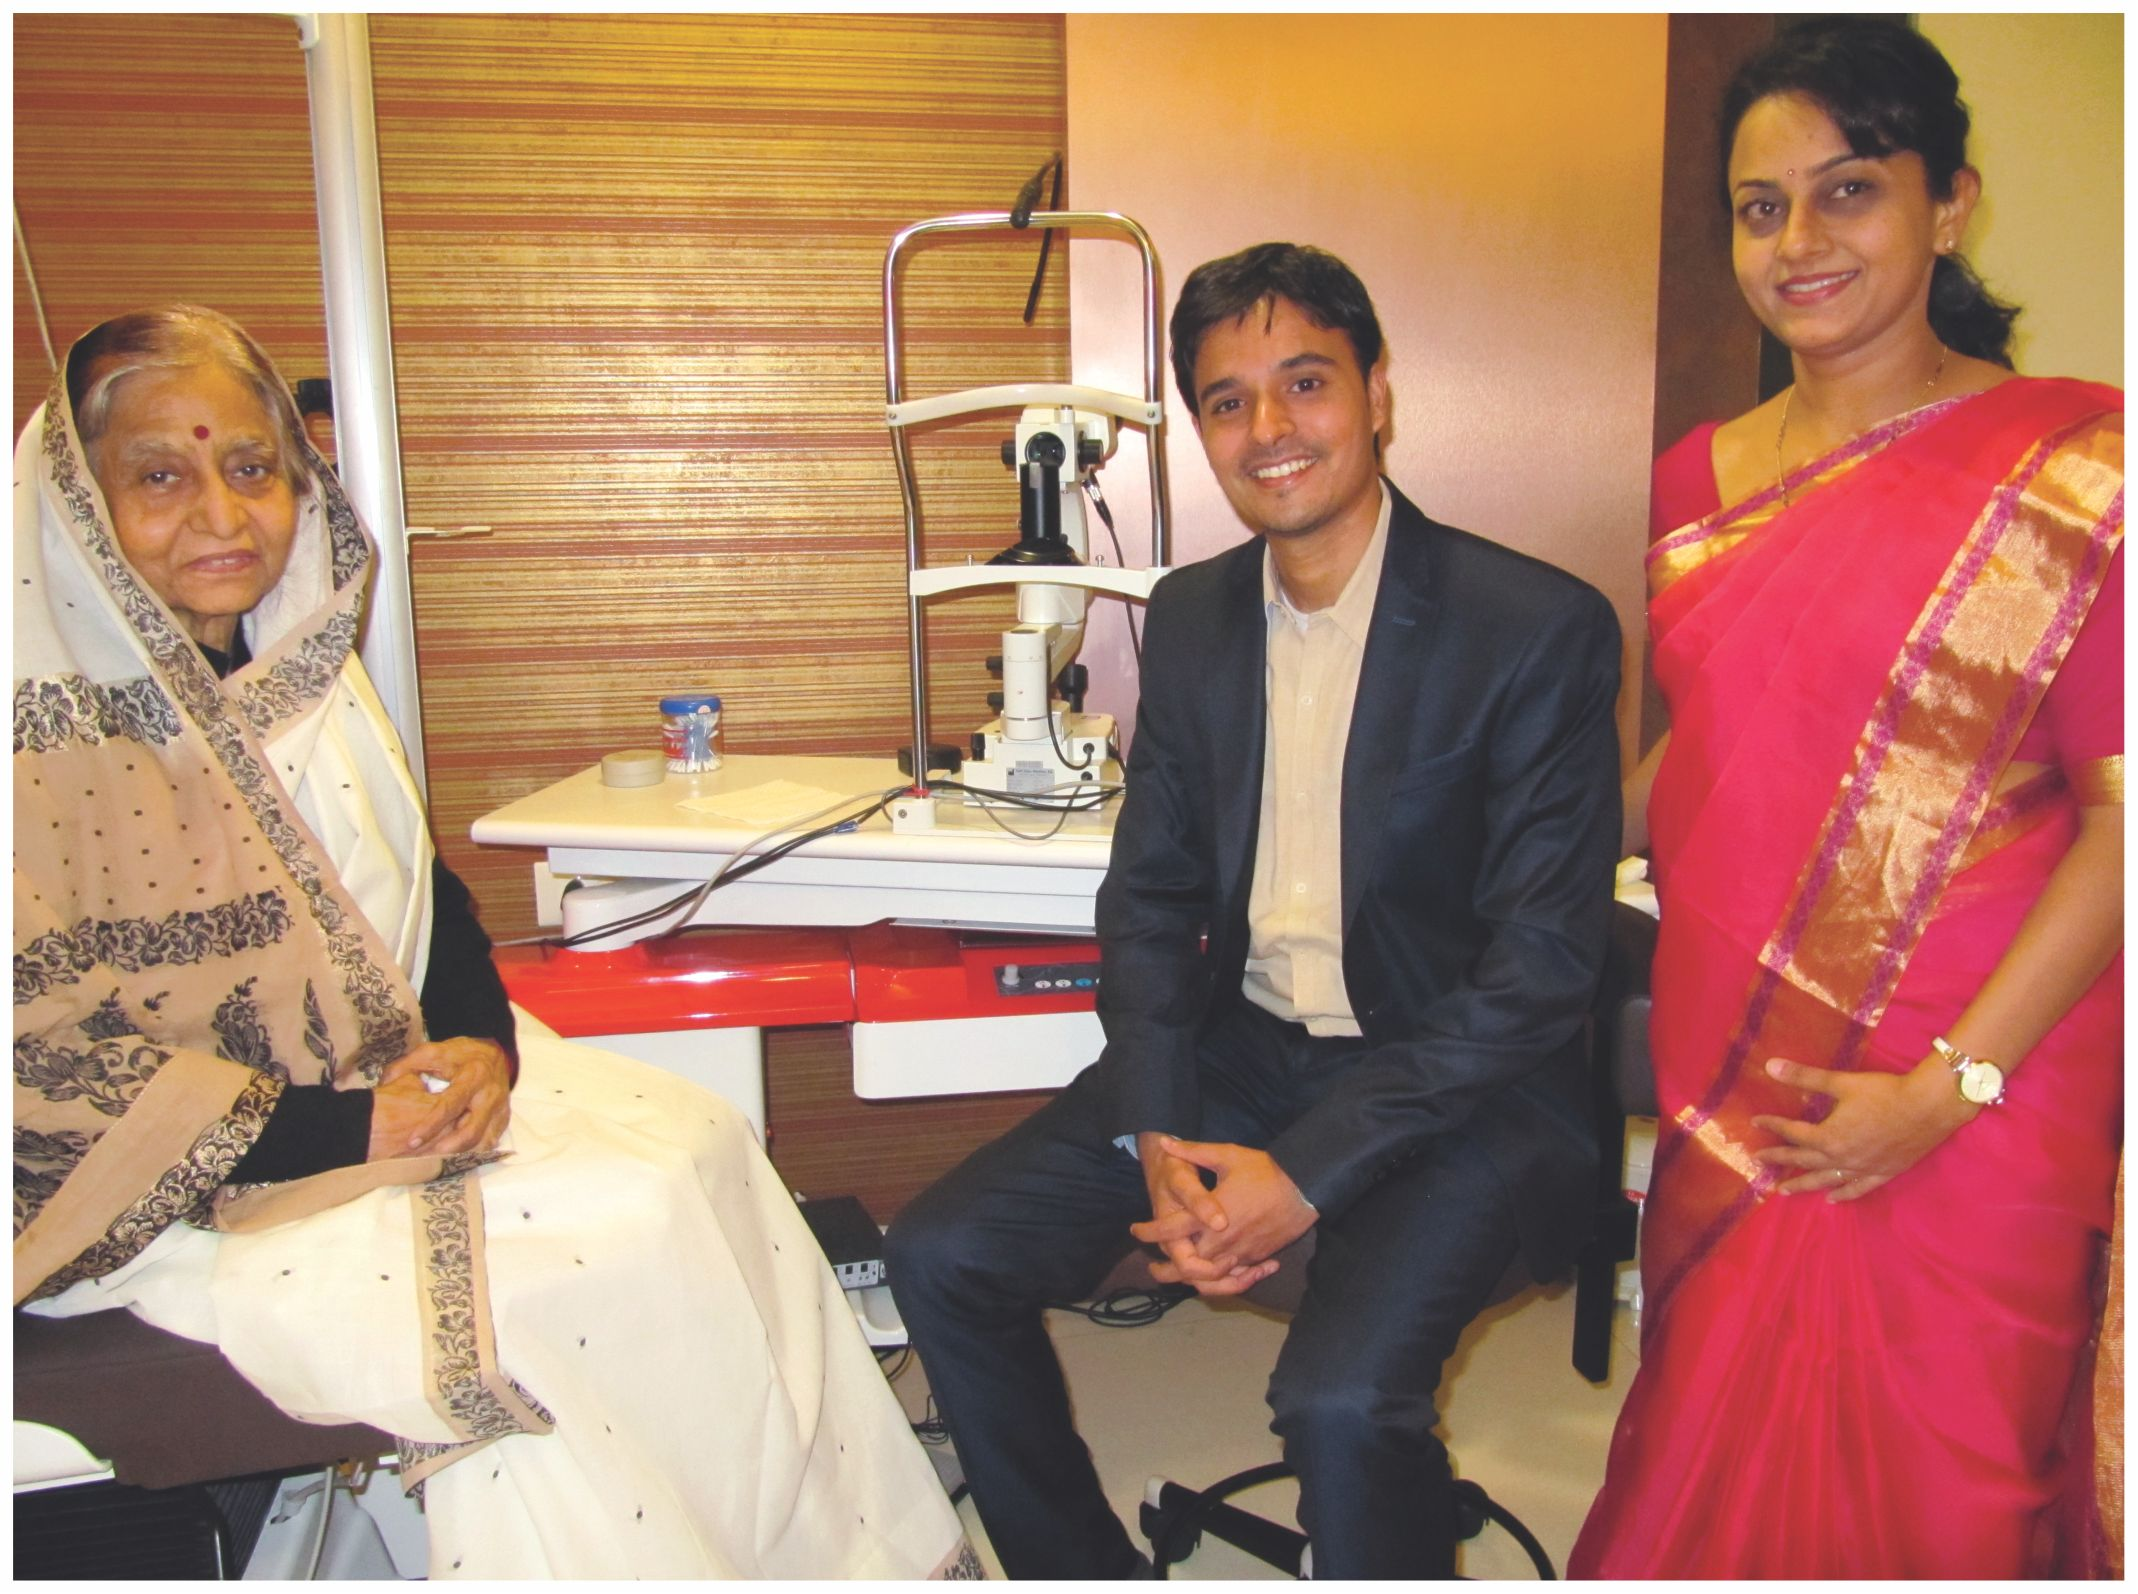 Dr.Vardhaman and Dr.Shrutika with Pratibha Devi Patil (Ex-President)